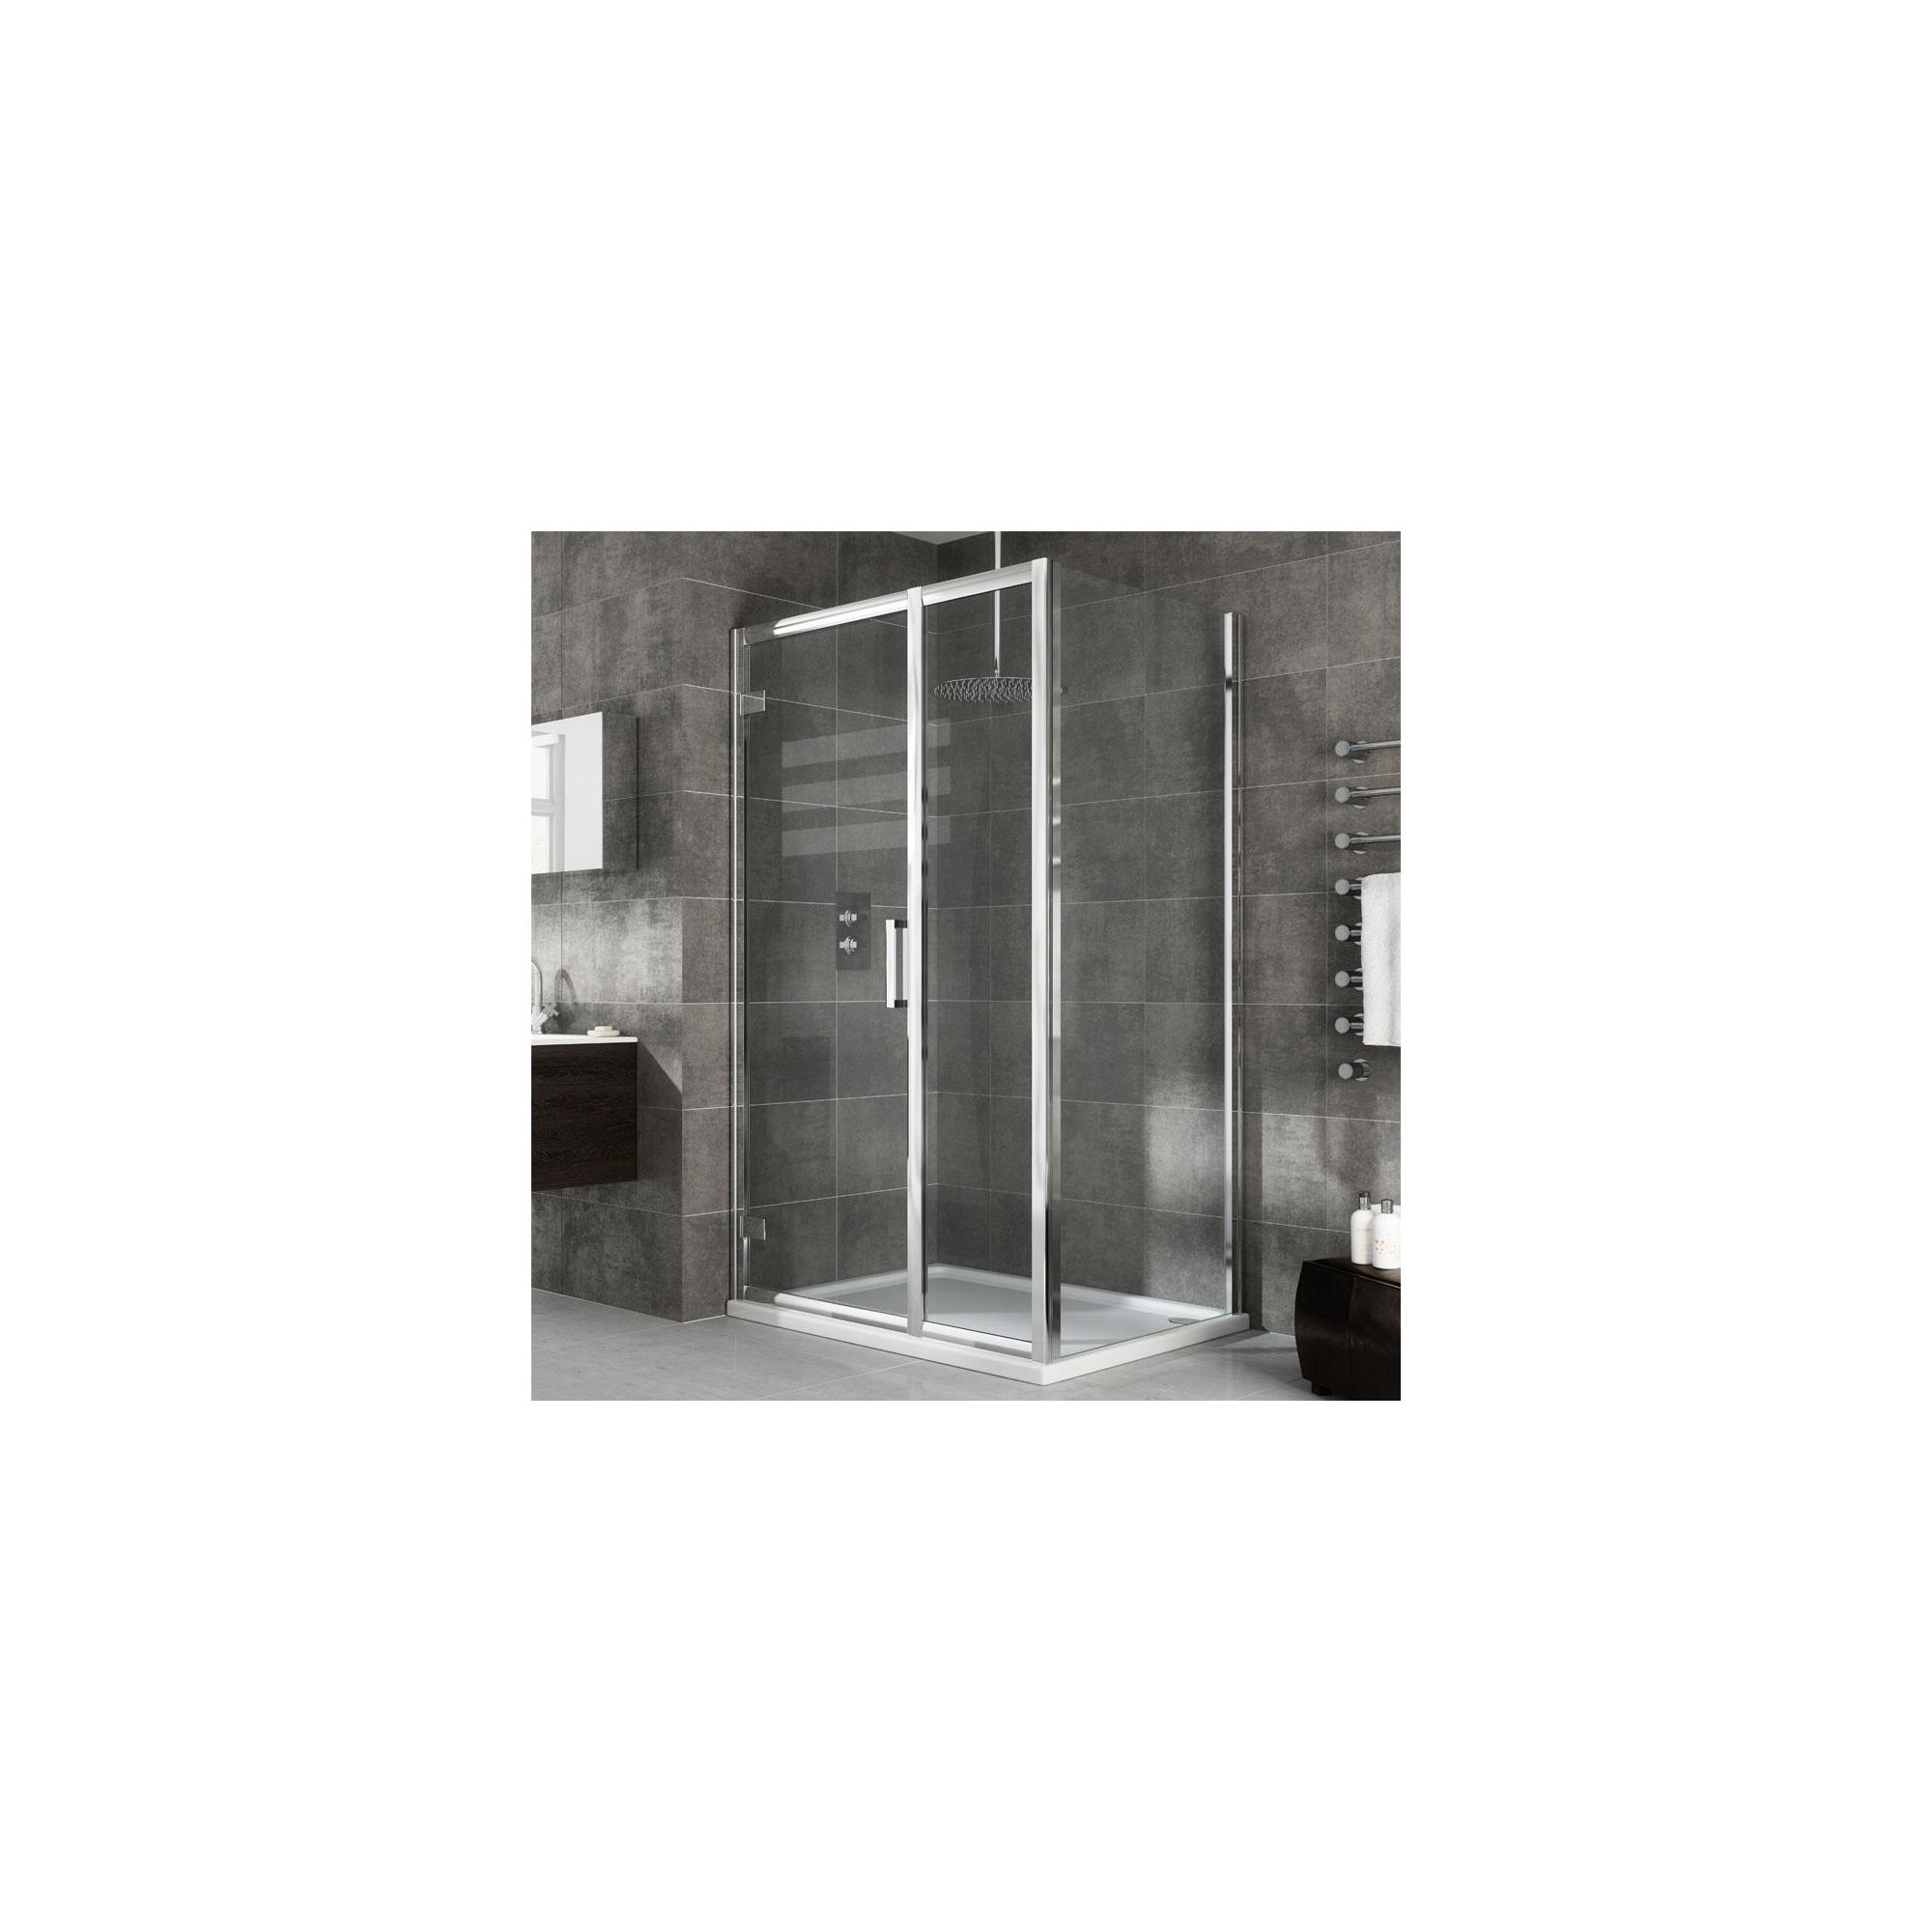 Elemis Eternity Inline Hinged Door Shower Enclosure, 1100mm x 800mm, 8mm Glass, Low Profile Tray at Tescos Direct